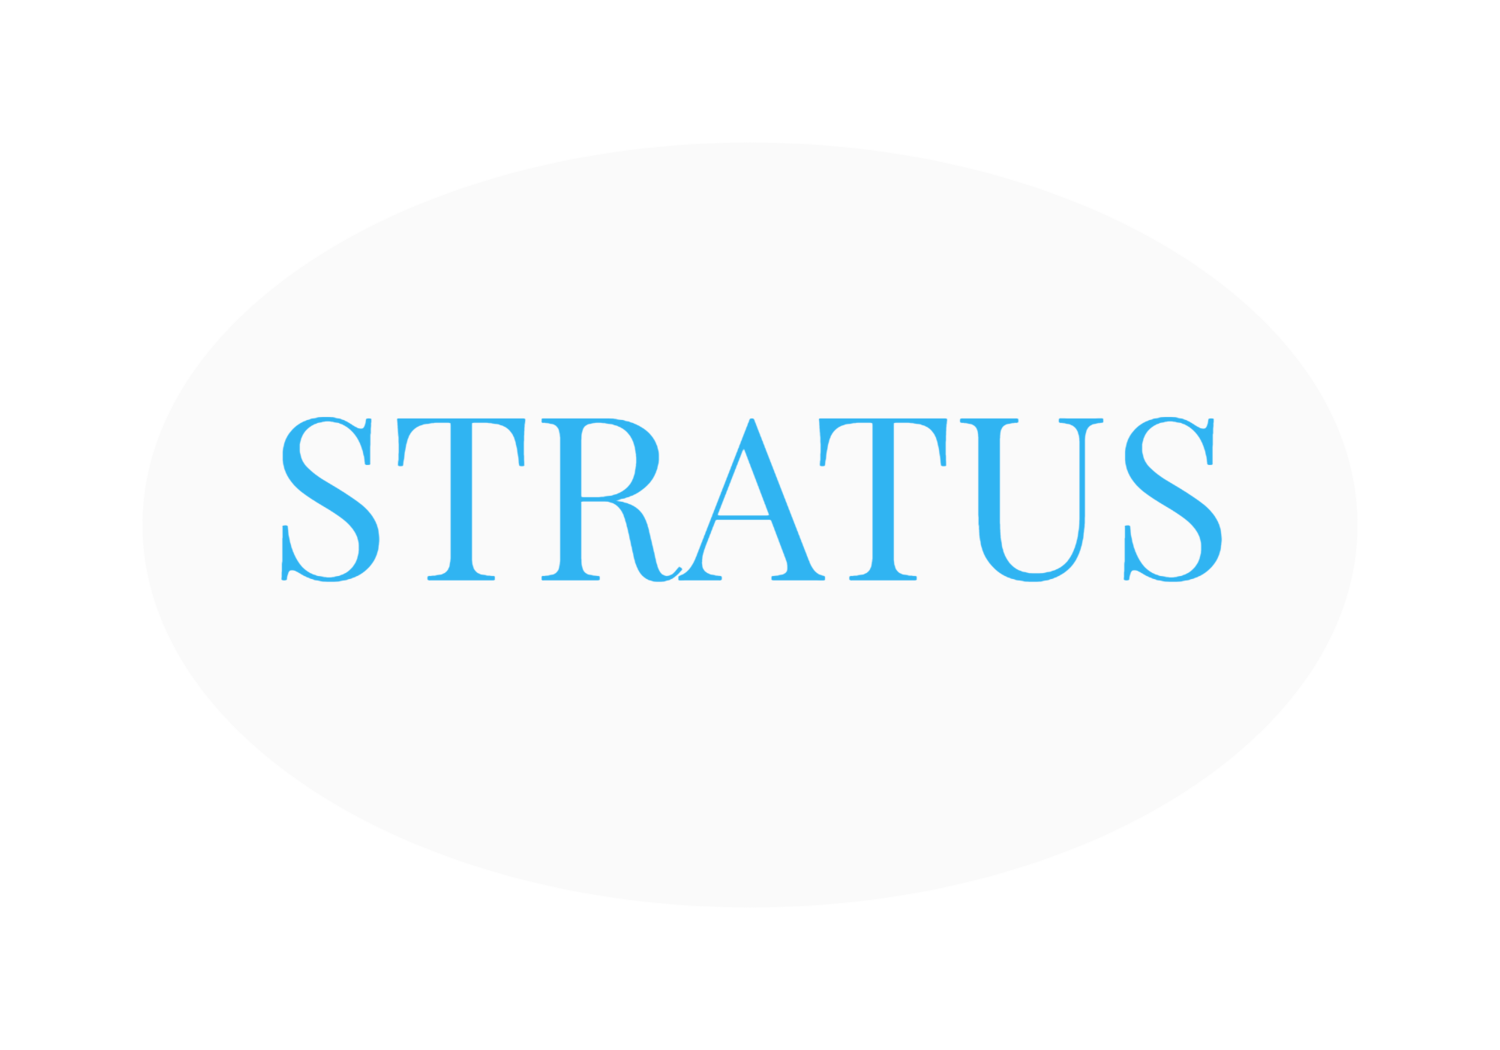 Stratus Capital Management